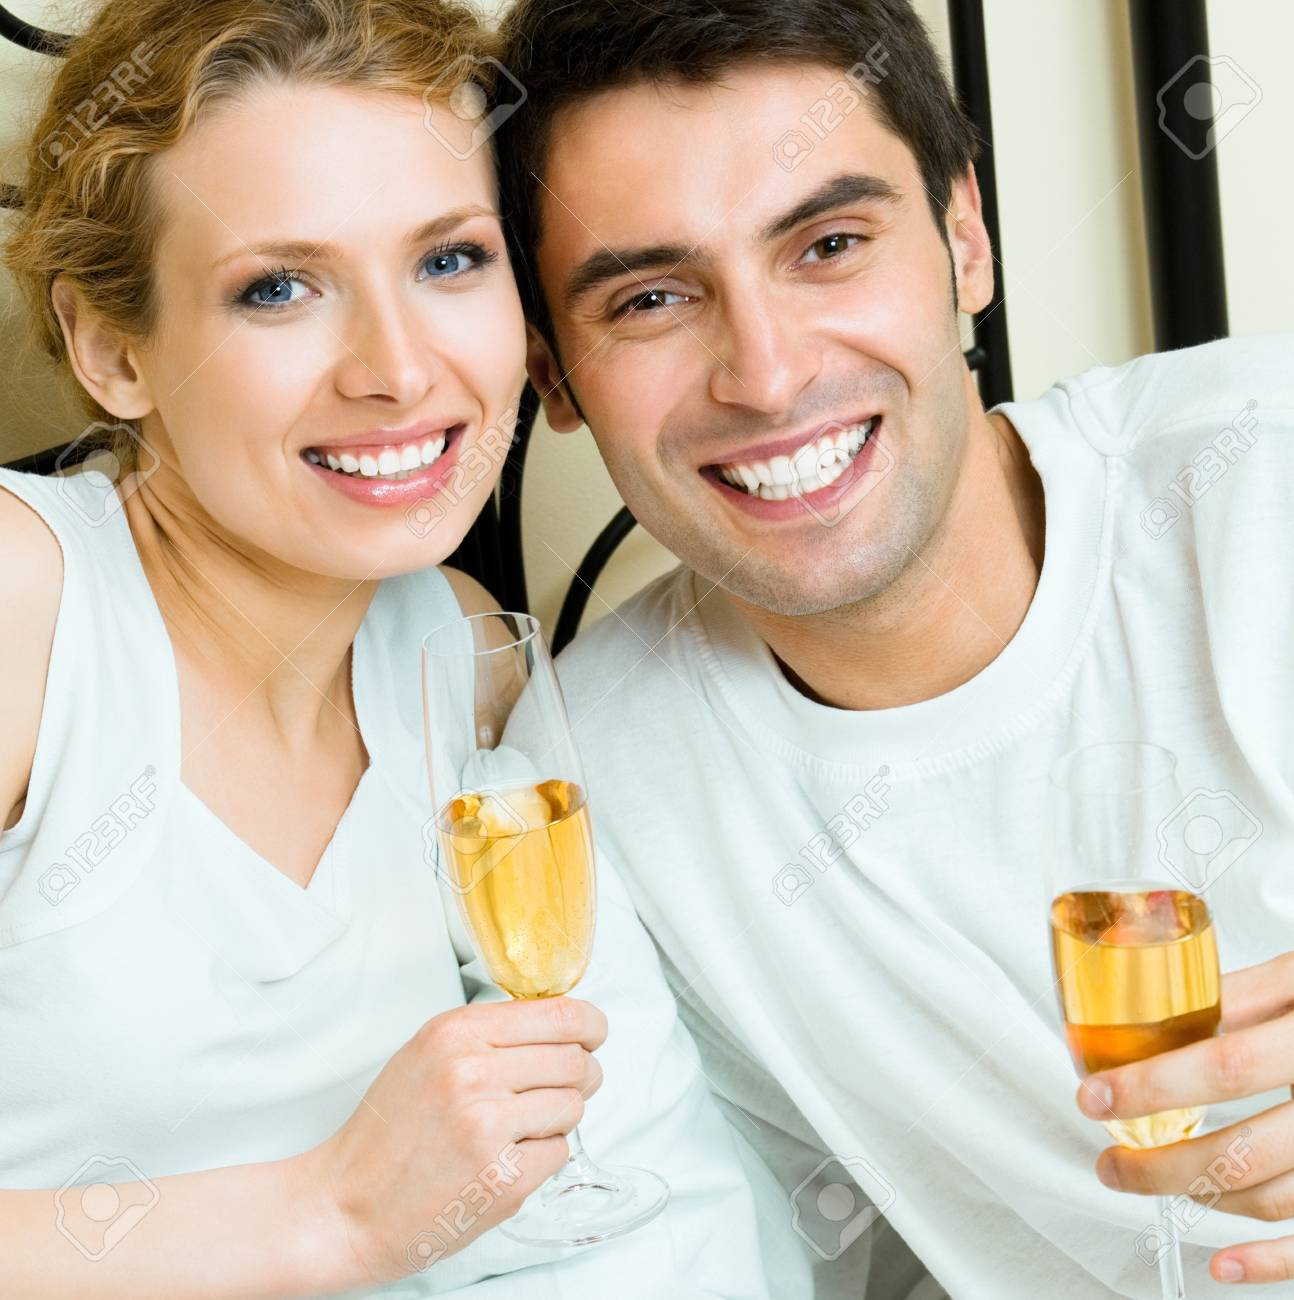 Young happy smiling amorous couple celebrating with champagne at bedroom Stock Photo - 9896069